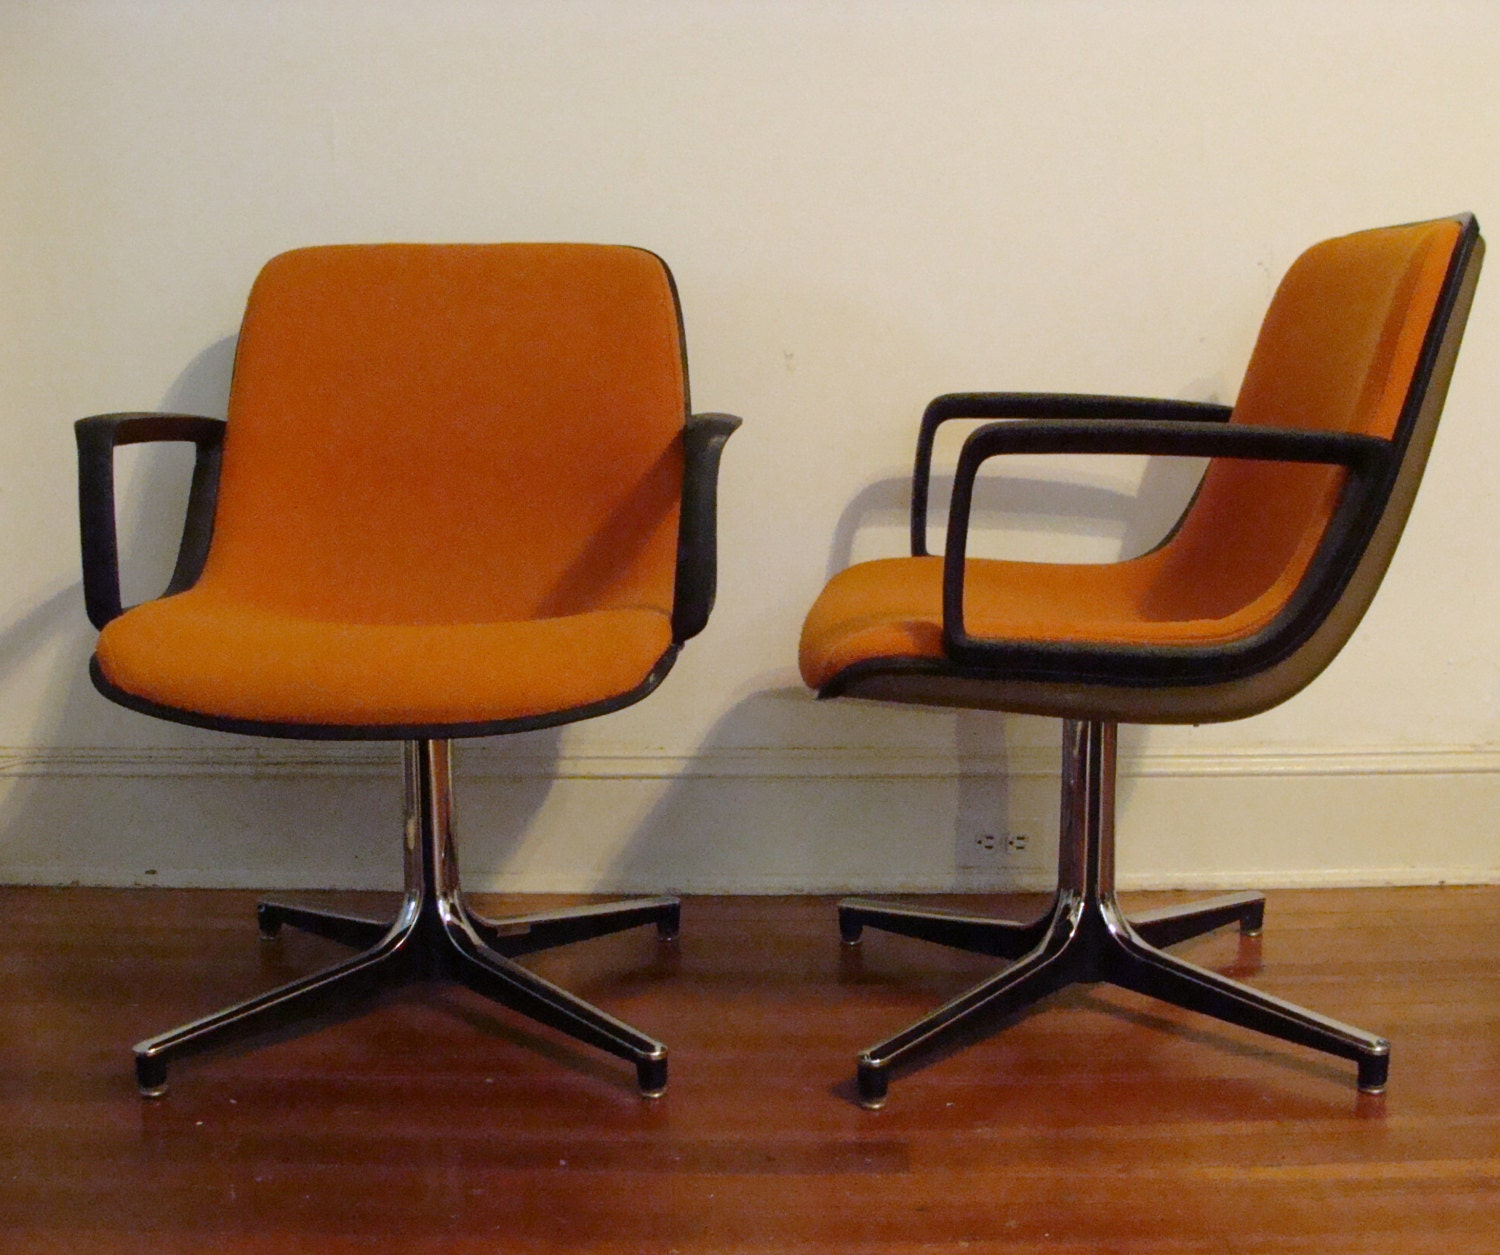 Popular items for vintage desk chair on Etsy